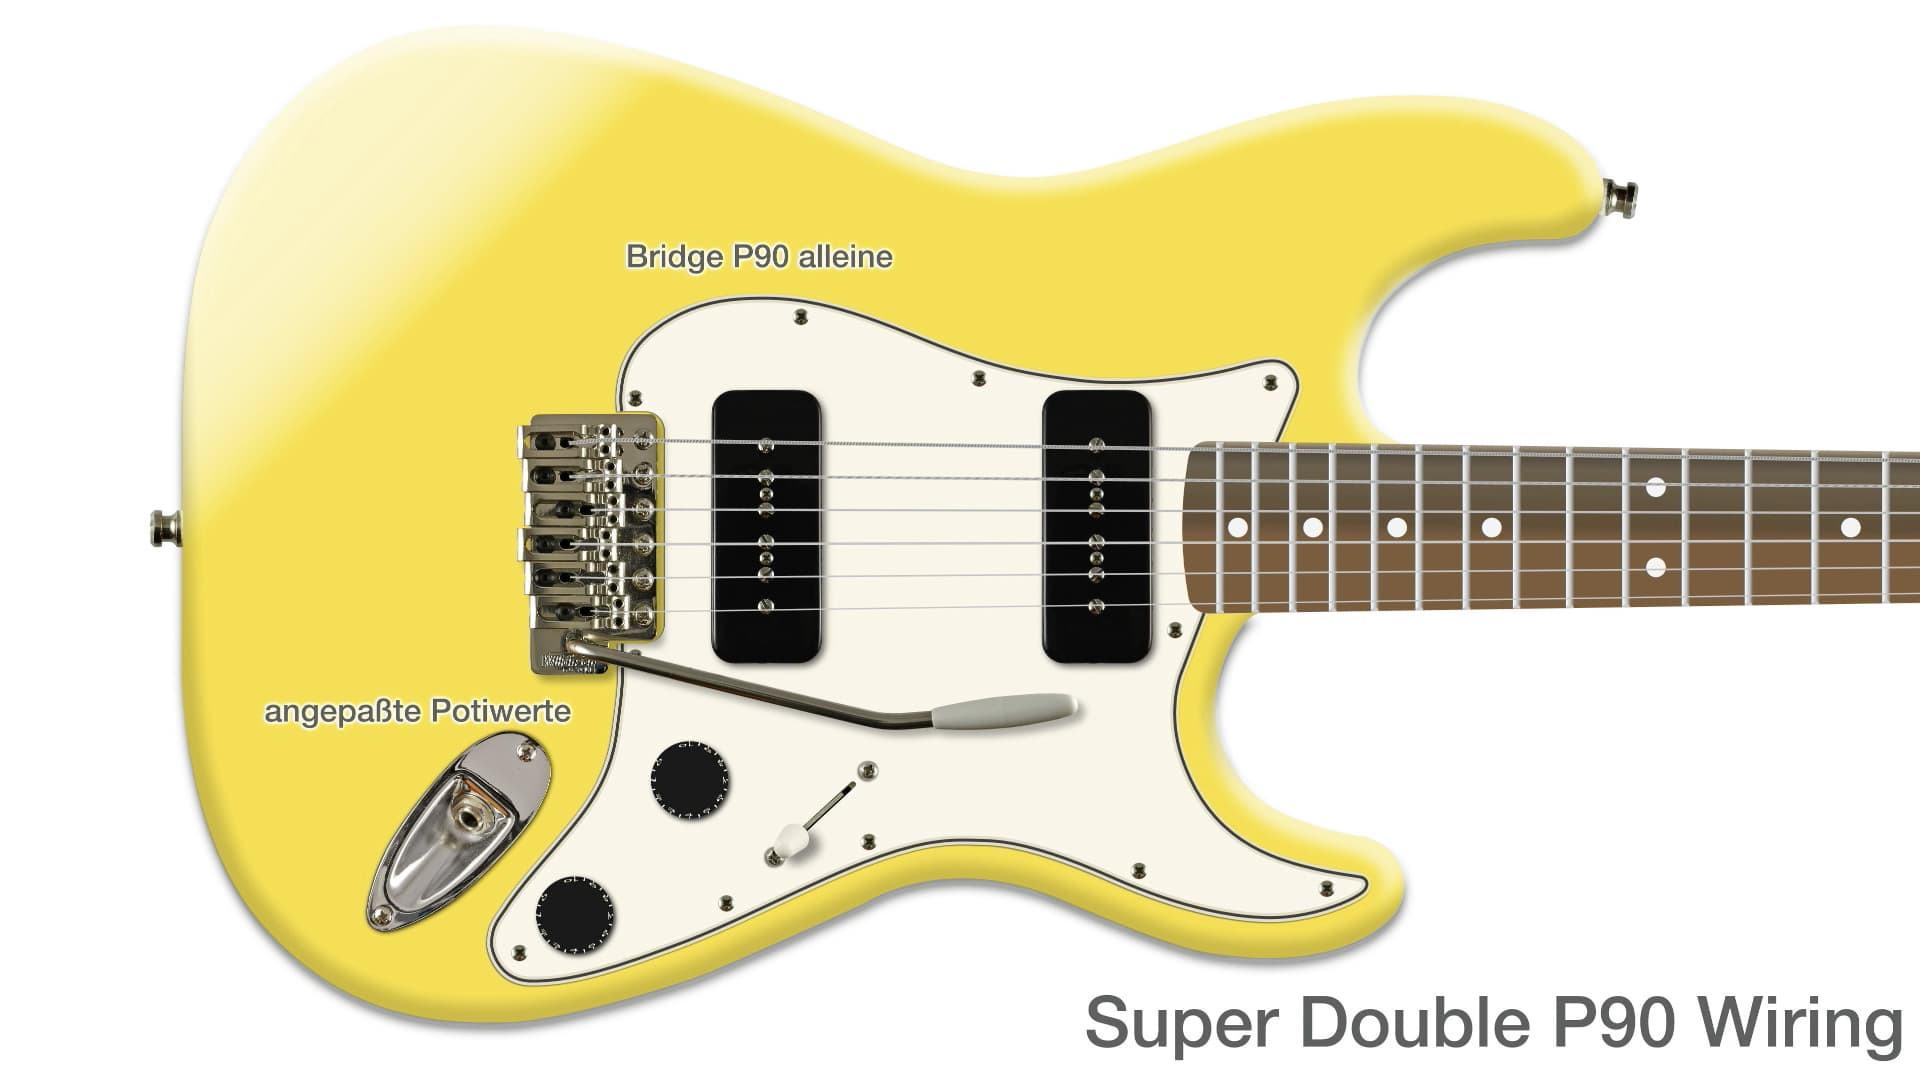 Marvelous Super Double P90 Acys Guitar Lounge Und Haussel Pickups Wiring Digital Resources Timewpwclawcorpcom